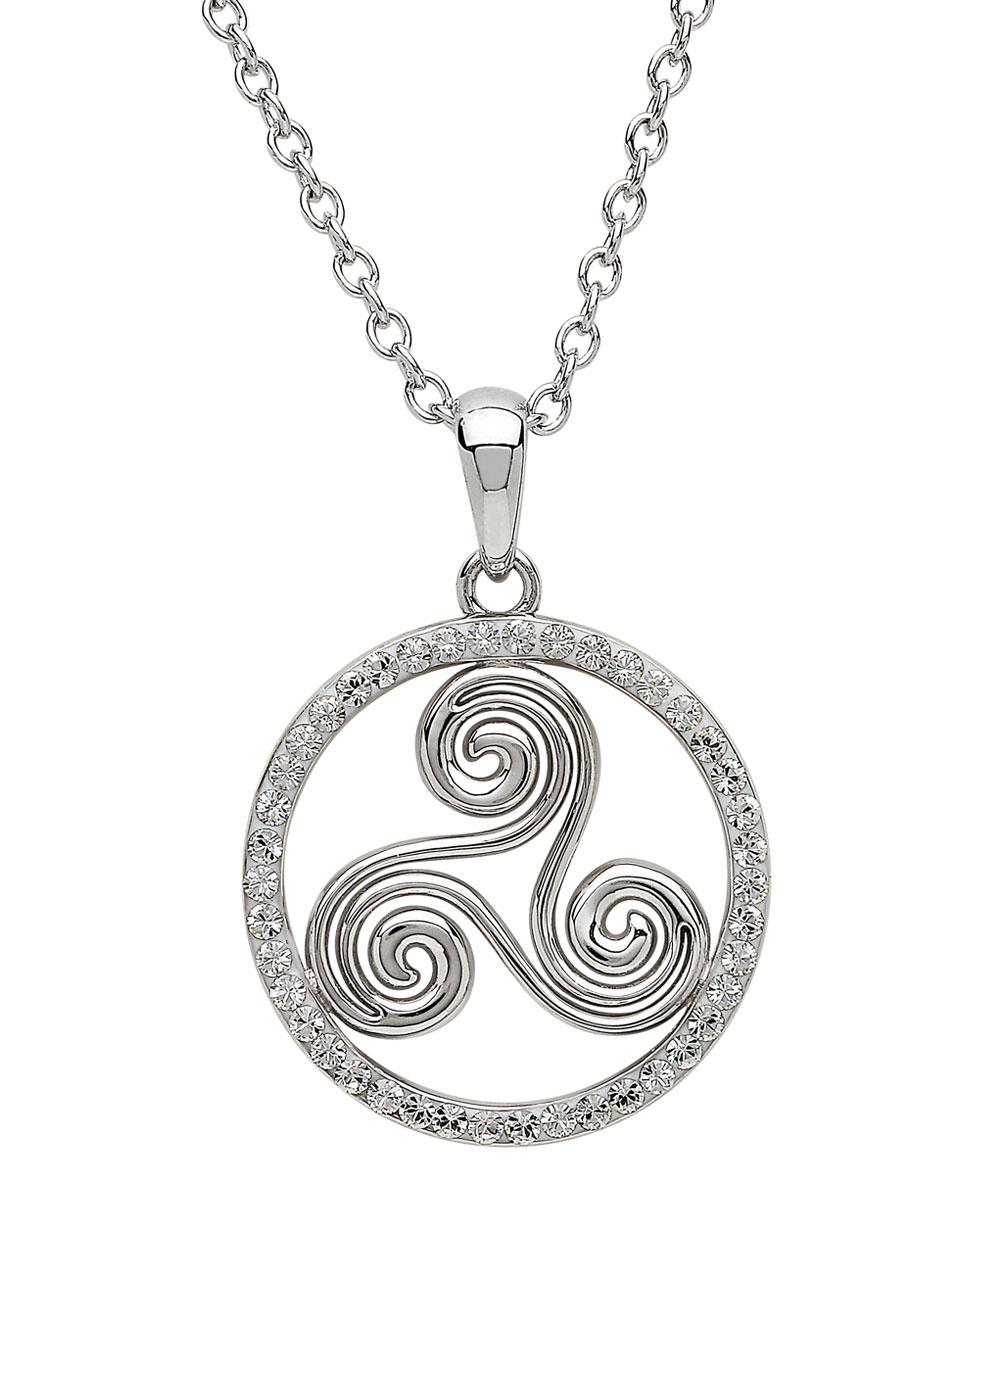 Silver Triskele Pendant Surrounded With Swarovski Crystals